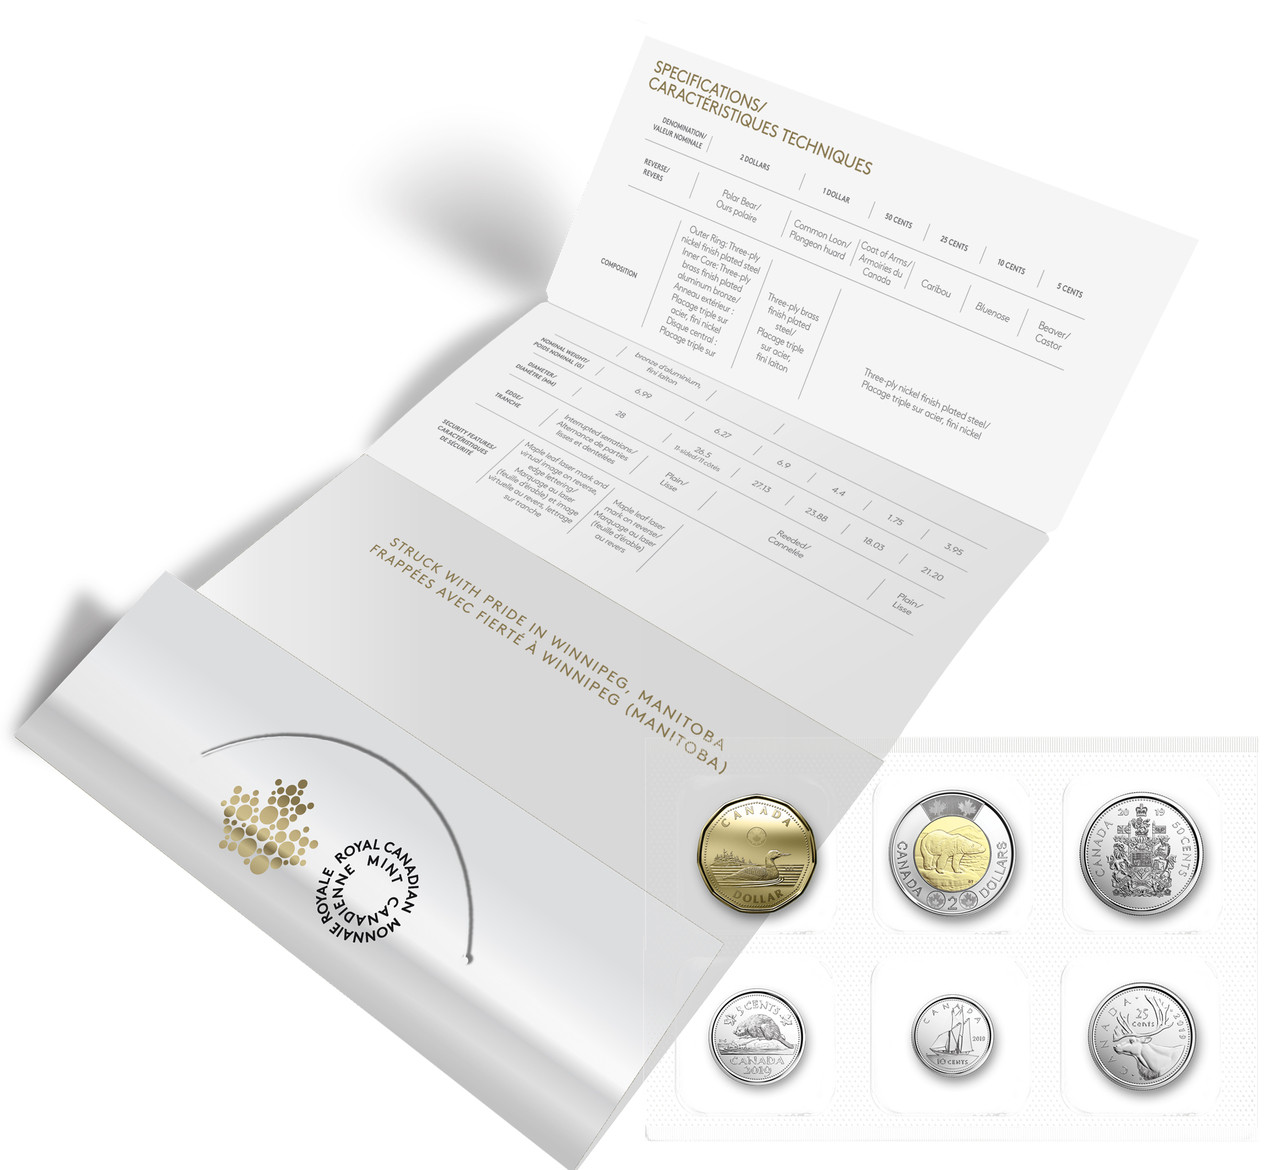 1983 Canada Uncirculated Coin Collection 6 Coin Set 1 Cent To One Dollar Royal Available In Various Designs And Specifications For Your Selection World